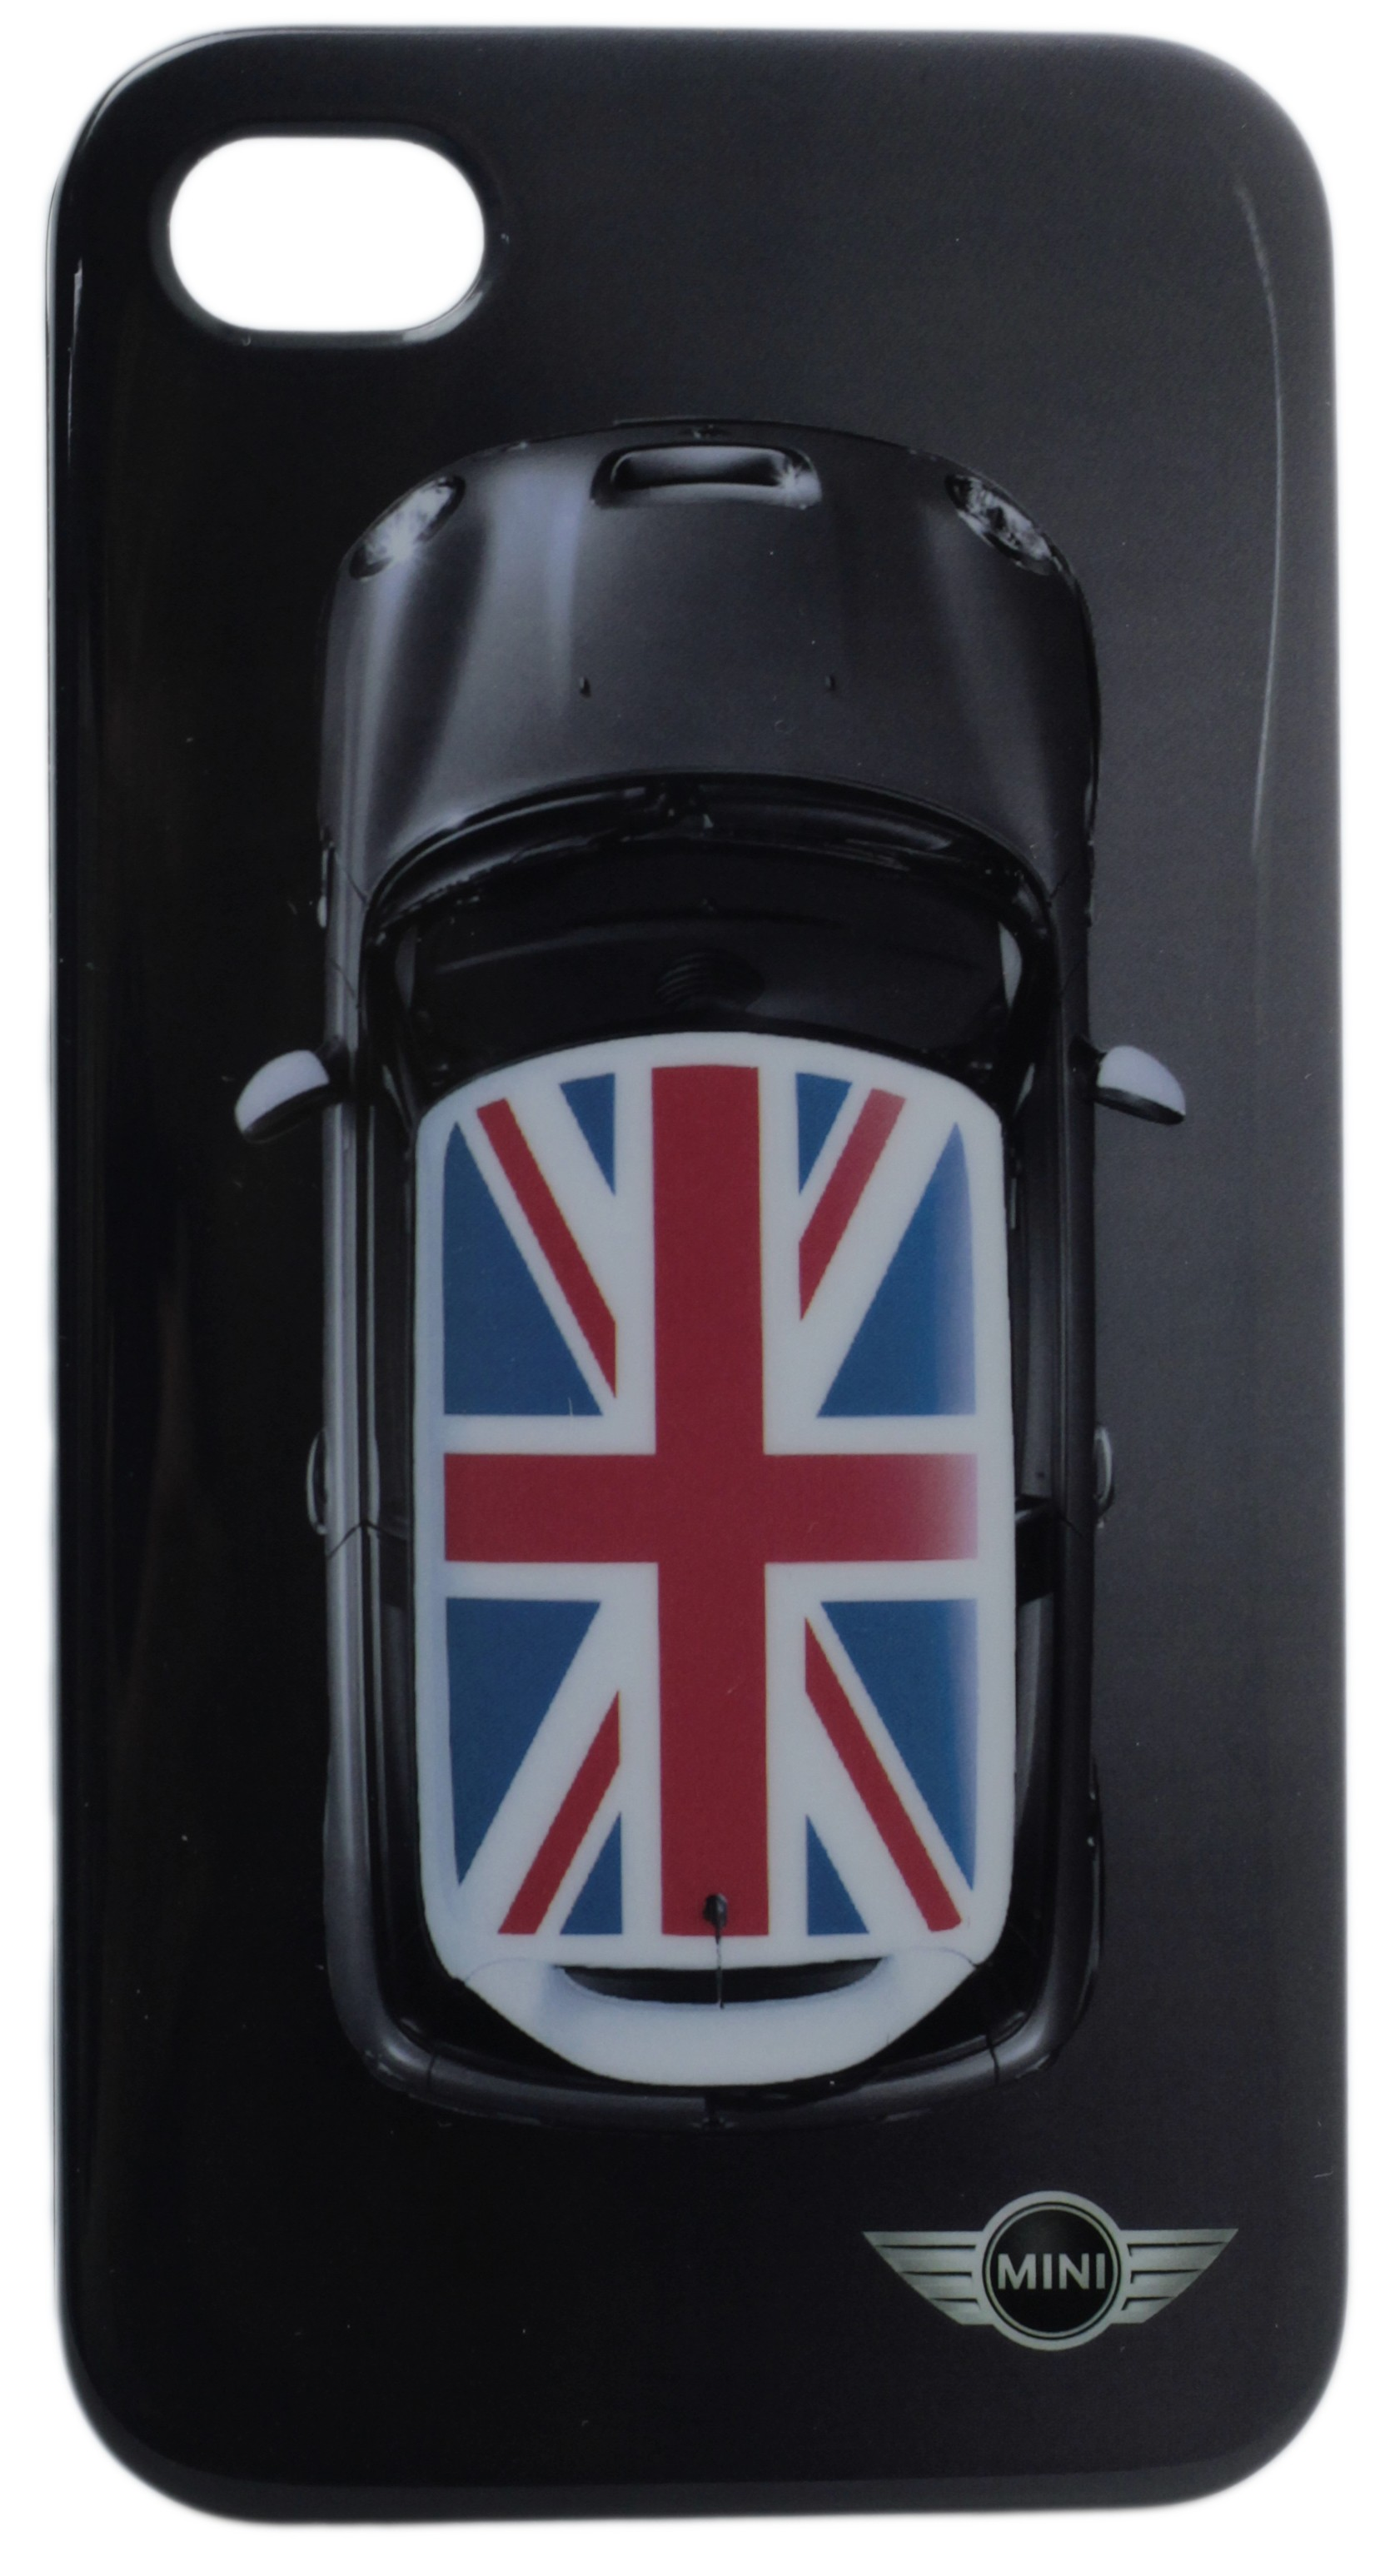 Чехол силиконовый Mini Cooper для iPhone 4 UK Flag Black (MNHCP4UKB)